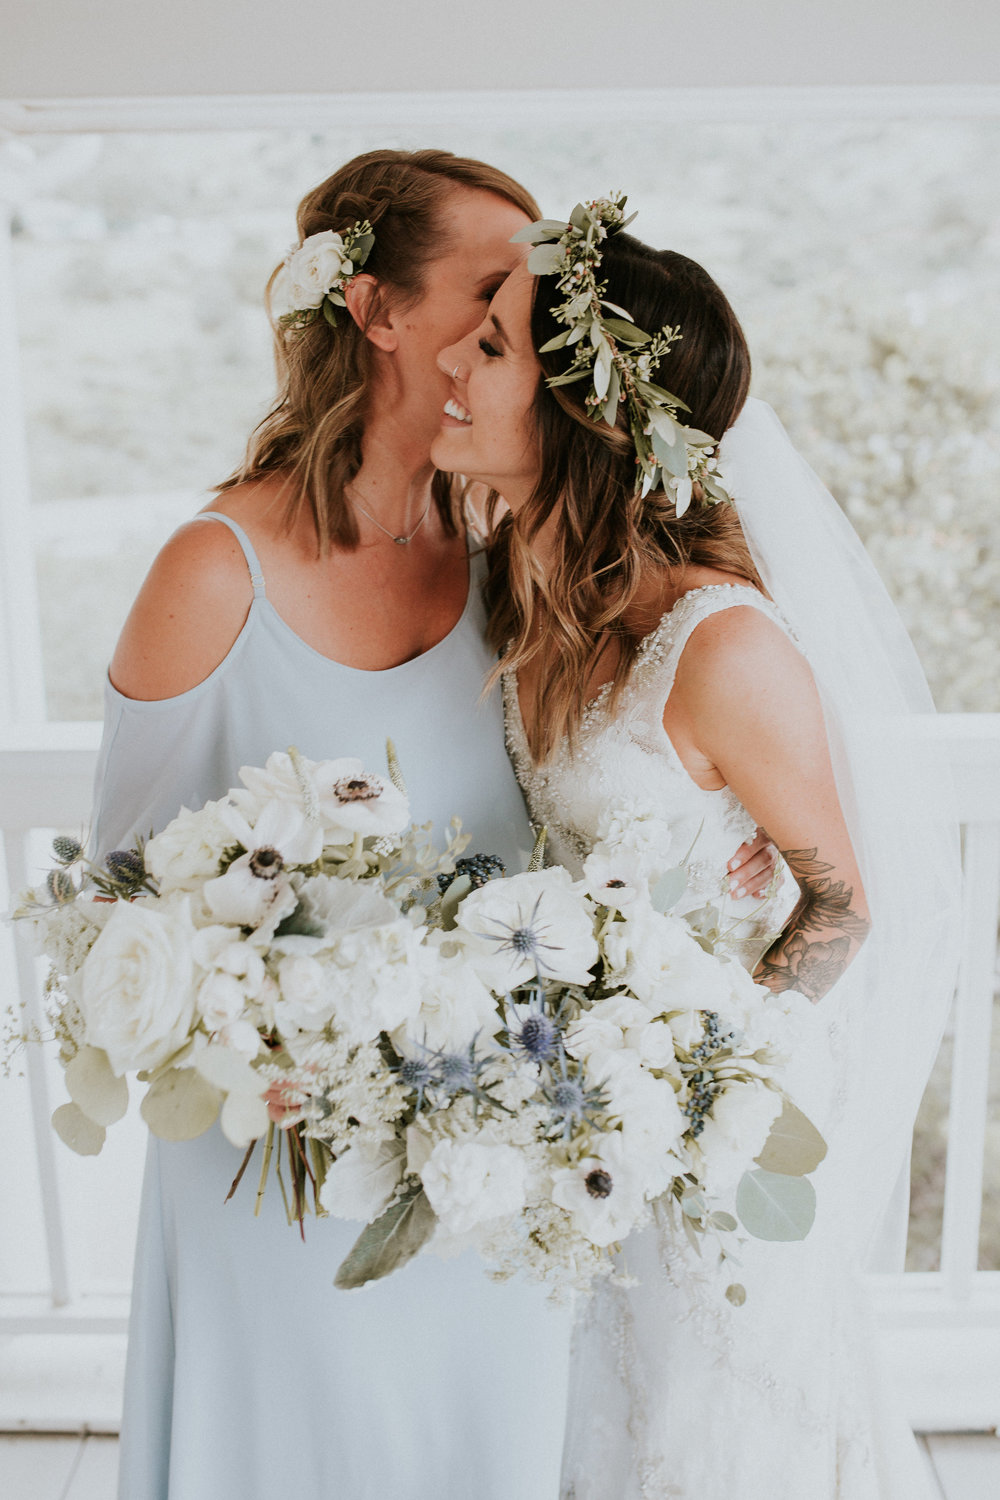 Flowers by Lace and Lilies, hair crown, green and white, garden rose, thistle, flower crown, foliage, bride hair flowers, bridesmaid flowers, summer wedding, colorado wedding, bridesmaid flowers, dusty blue dresses, flower combs, white and green bridal bouquet